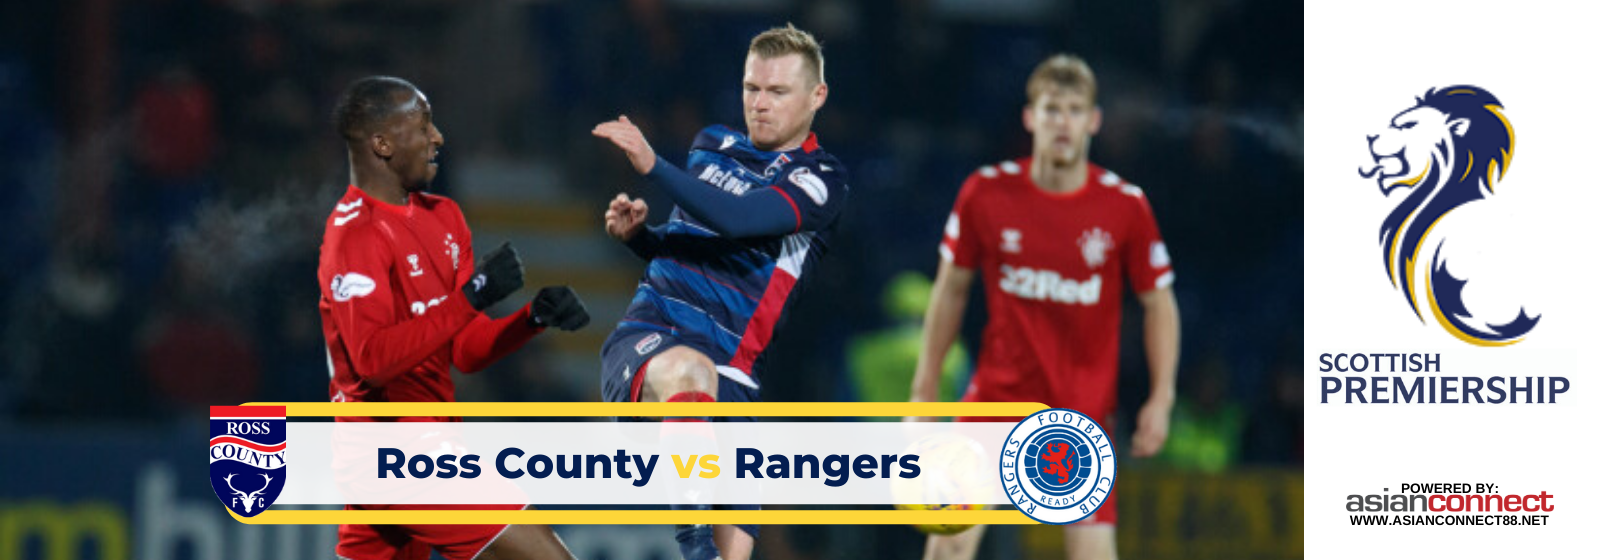 Asianconnect: Ross County vs Rangers Odds for March 08, 2020